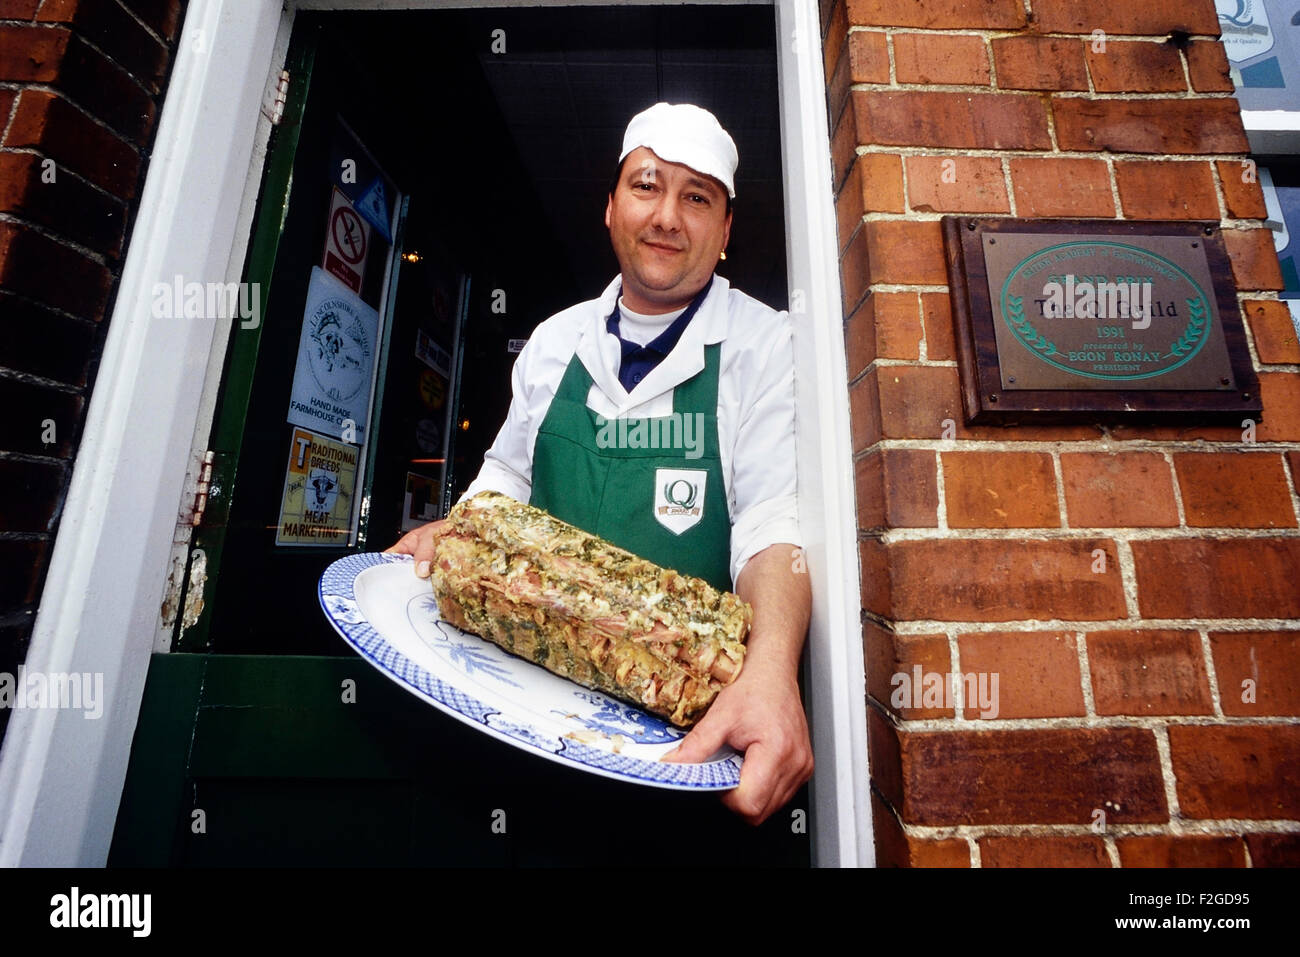 Independent Lincolnshire butcher holding a plate of stuffed Chine. England. UK - Stock Image